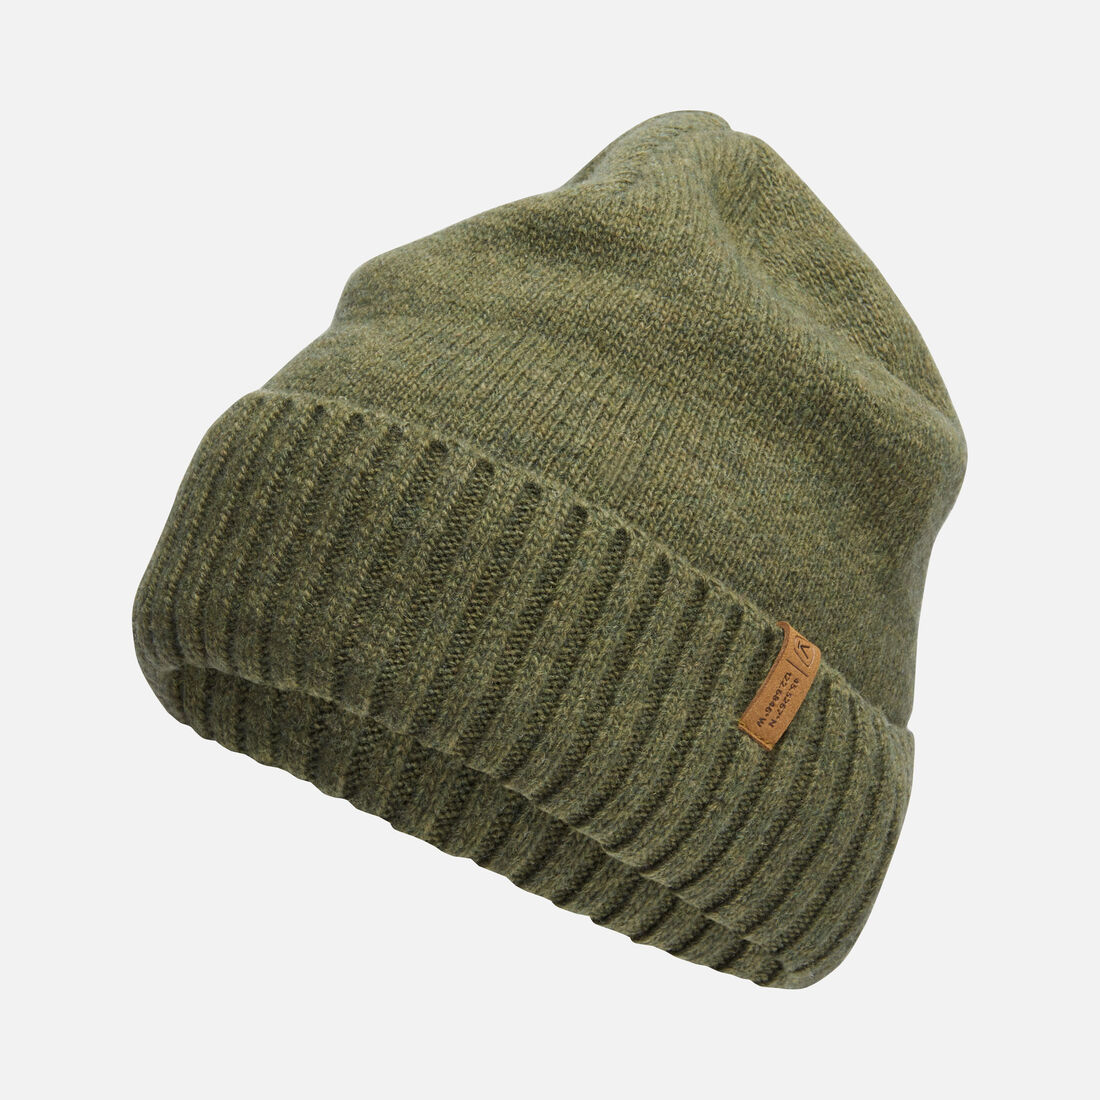 Locale Beanie in Moss - large view.